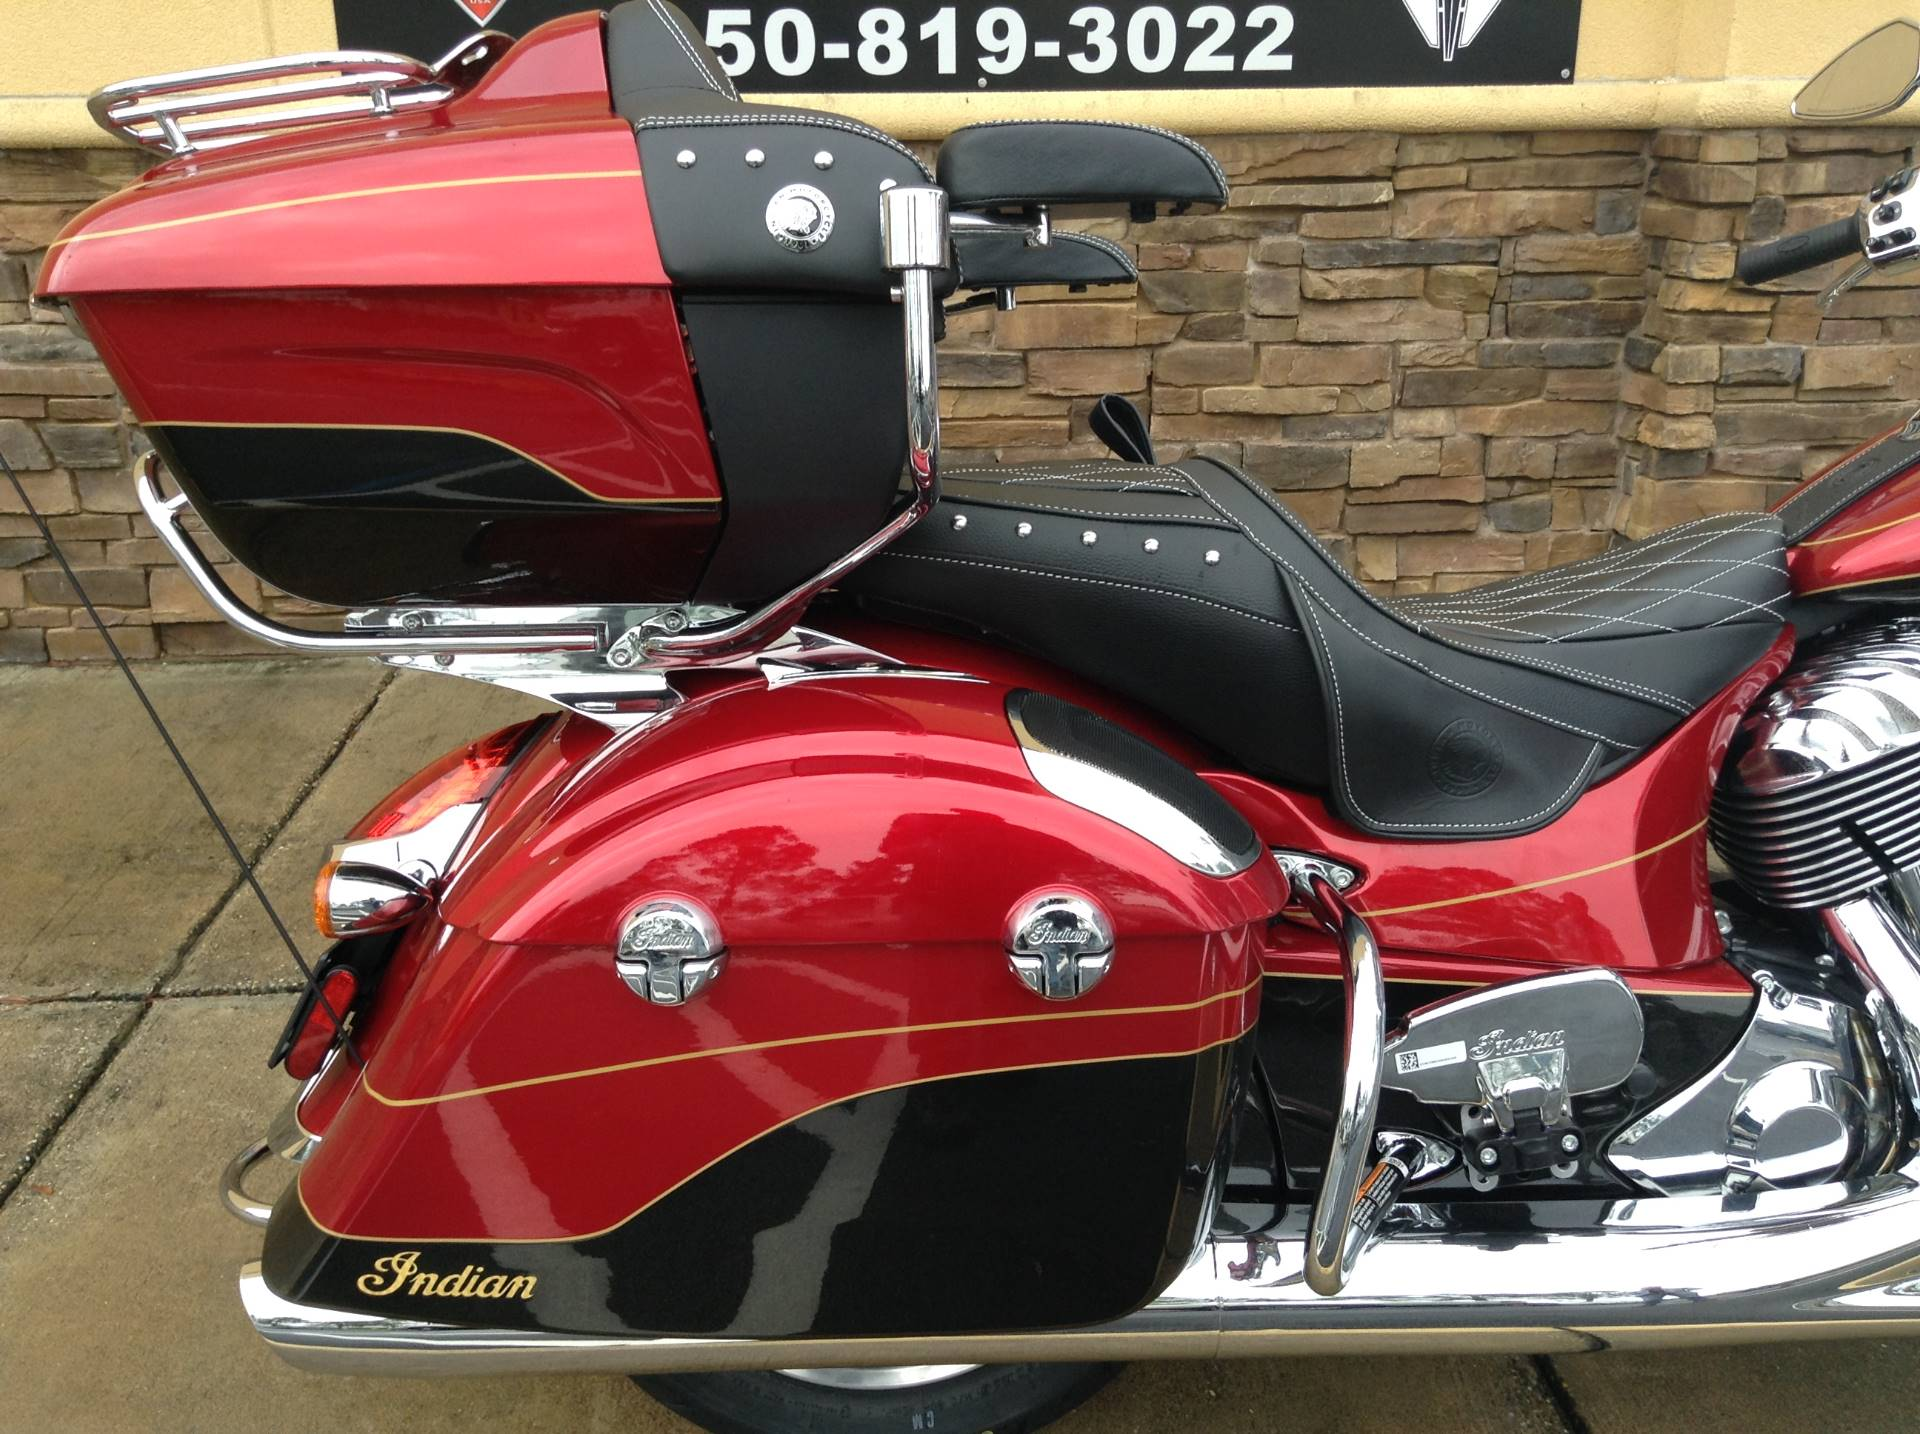 2019 Indian ROAD MASTER ELITE in Panama City Beach, Florida - Photo 10